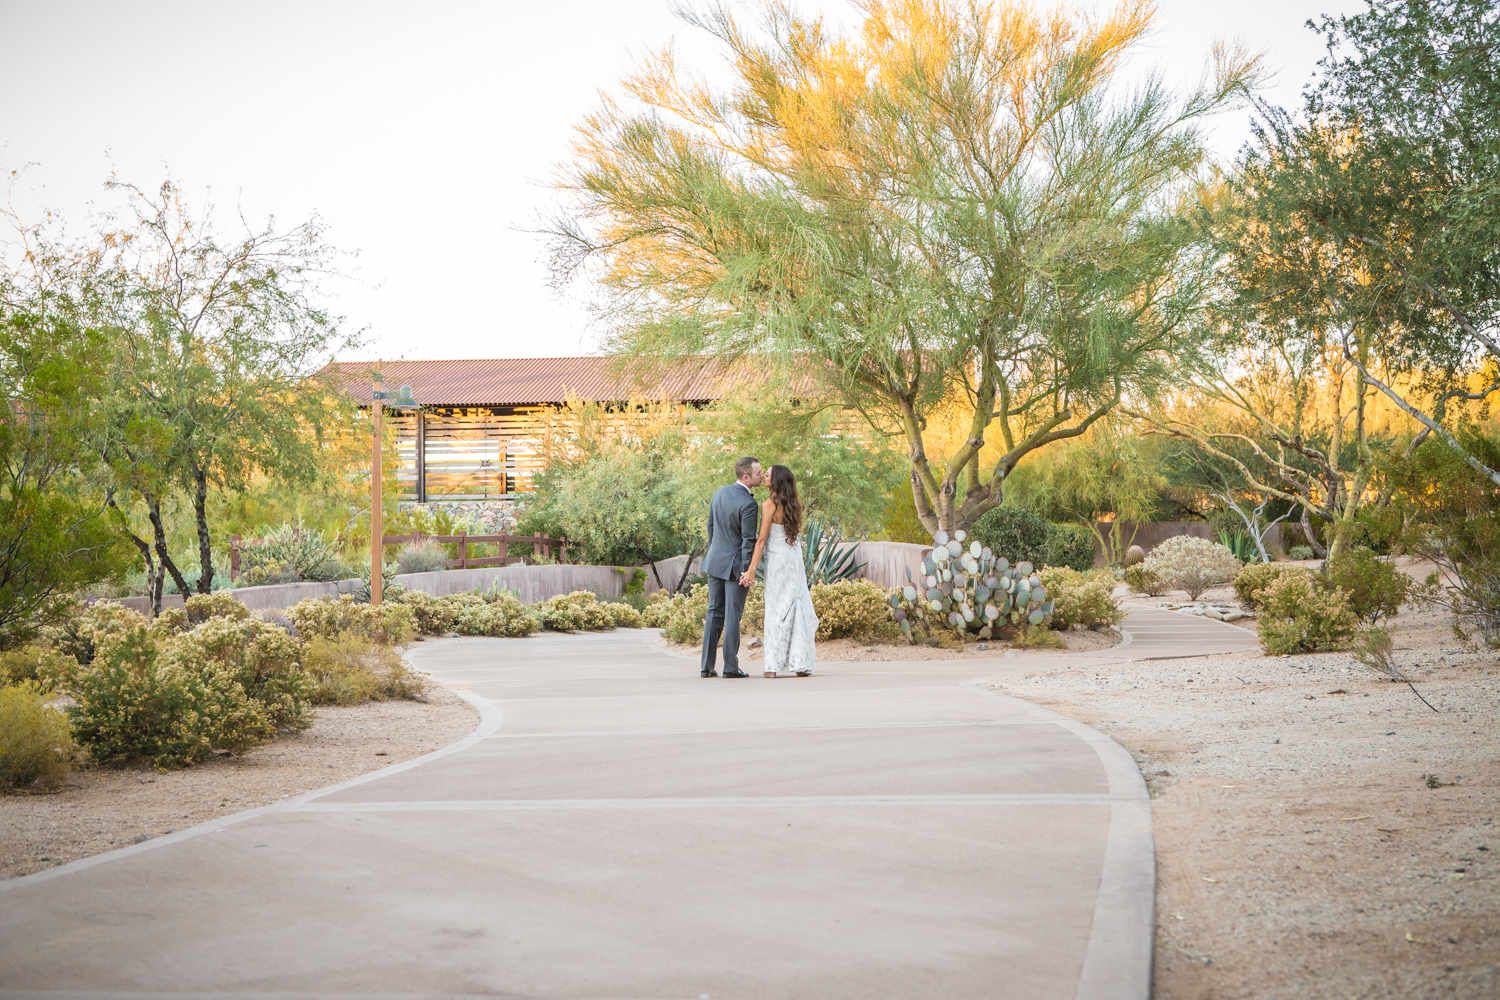 David-Orr-Photography_Scottsdalewedding048.jpg